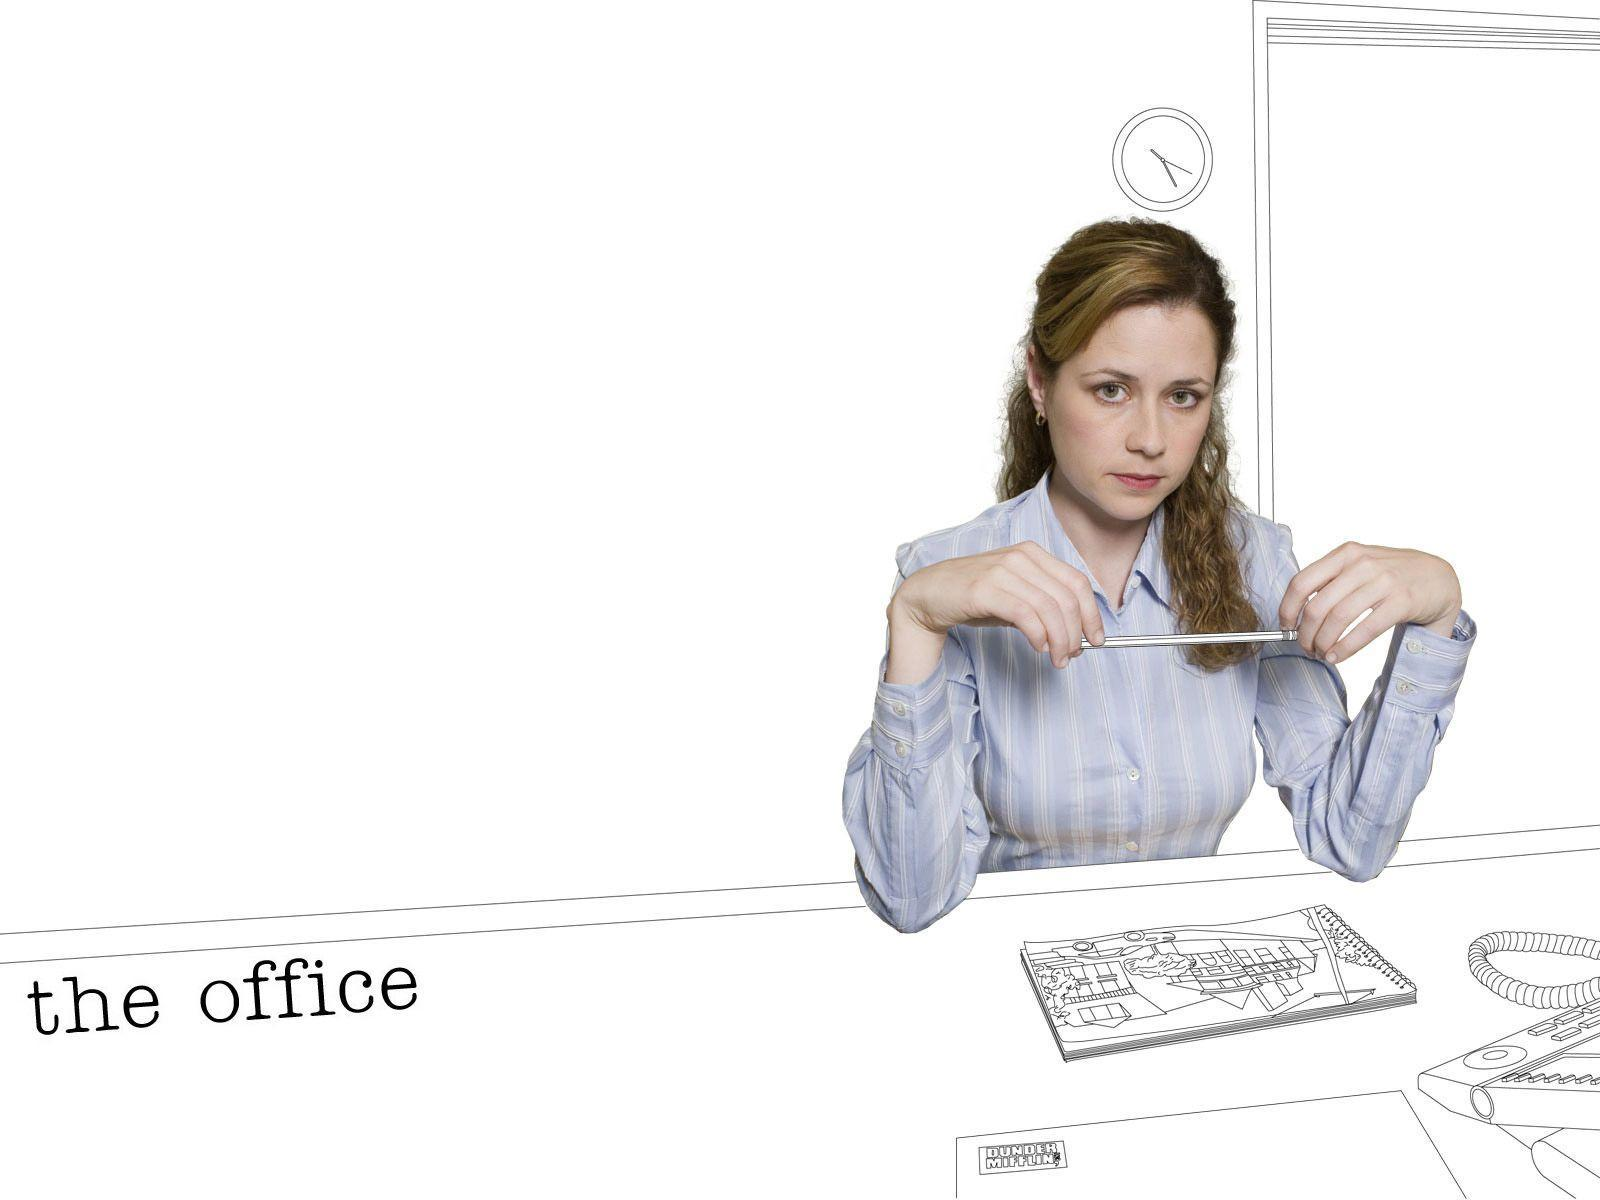 31 The Office (US) Wallpapers | The Office (US) Backgrounds